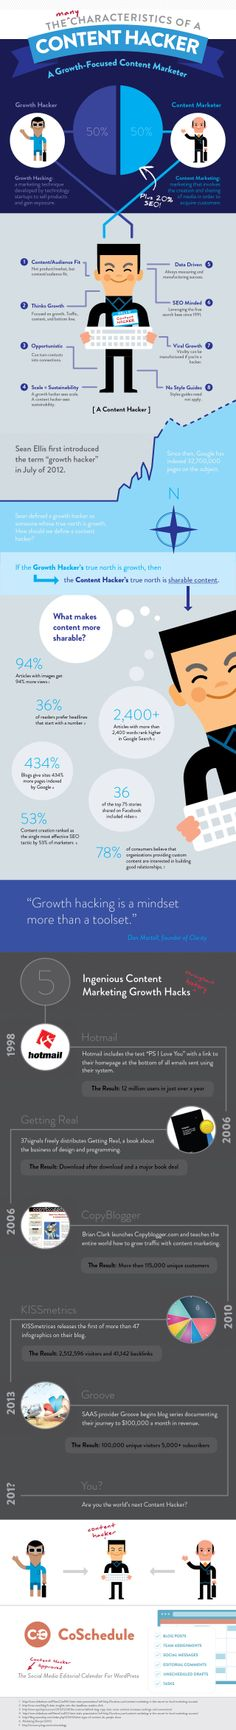 The characteristics of a Content Hacker #infografia #infographic #marketing